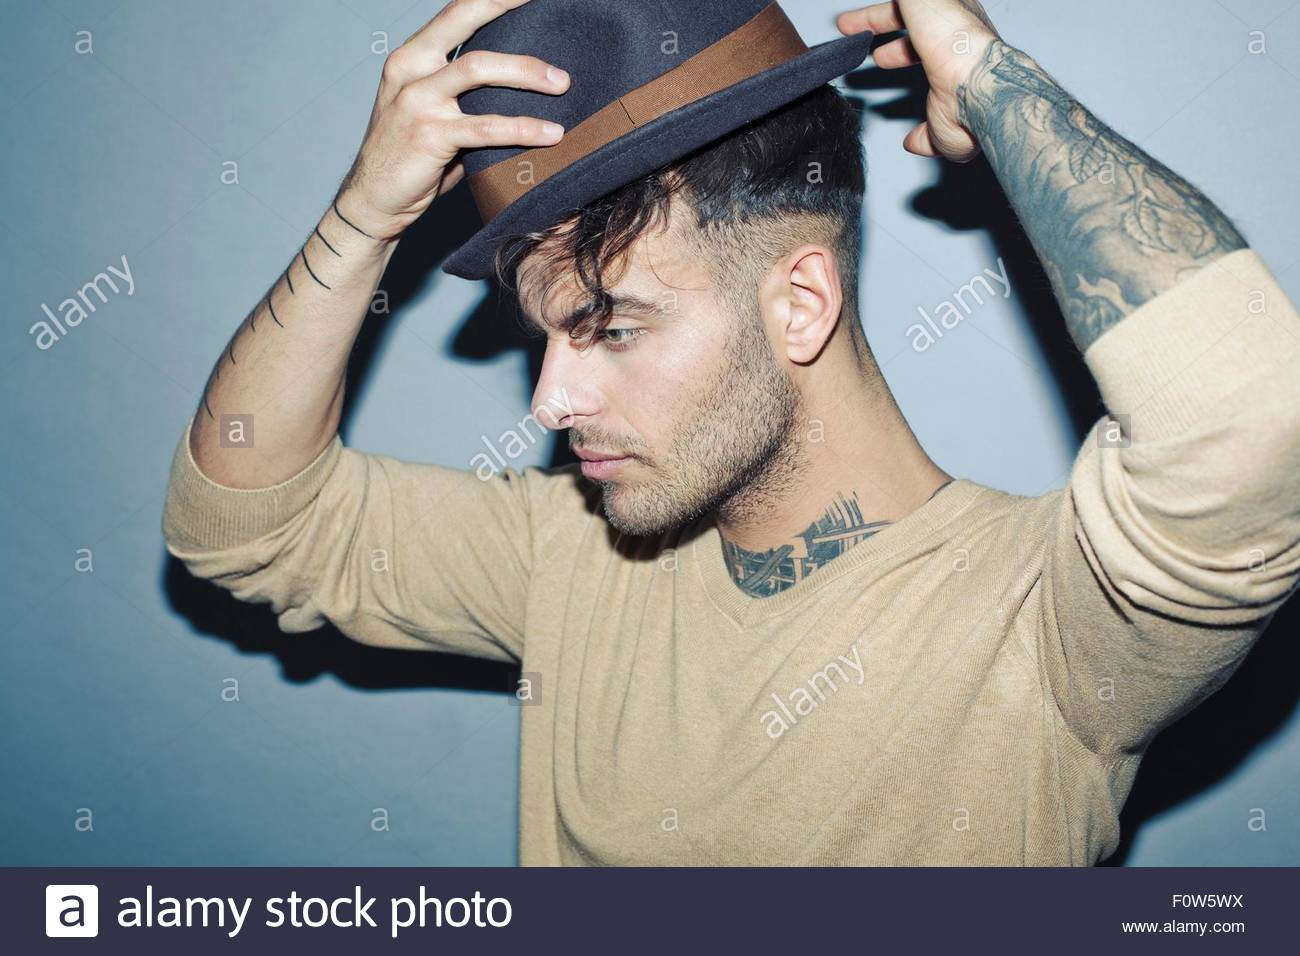 Young tattooed man putting on hat, looking away - Stock Image